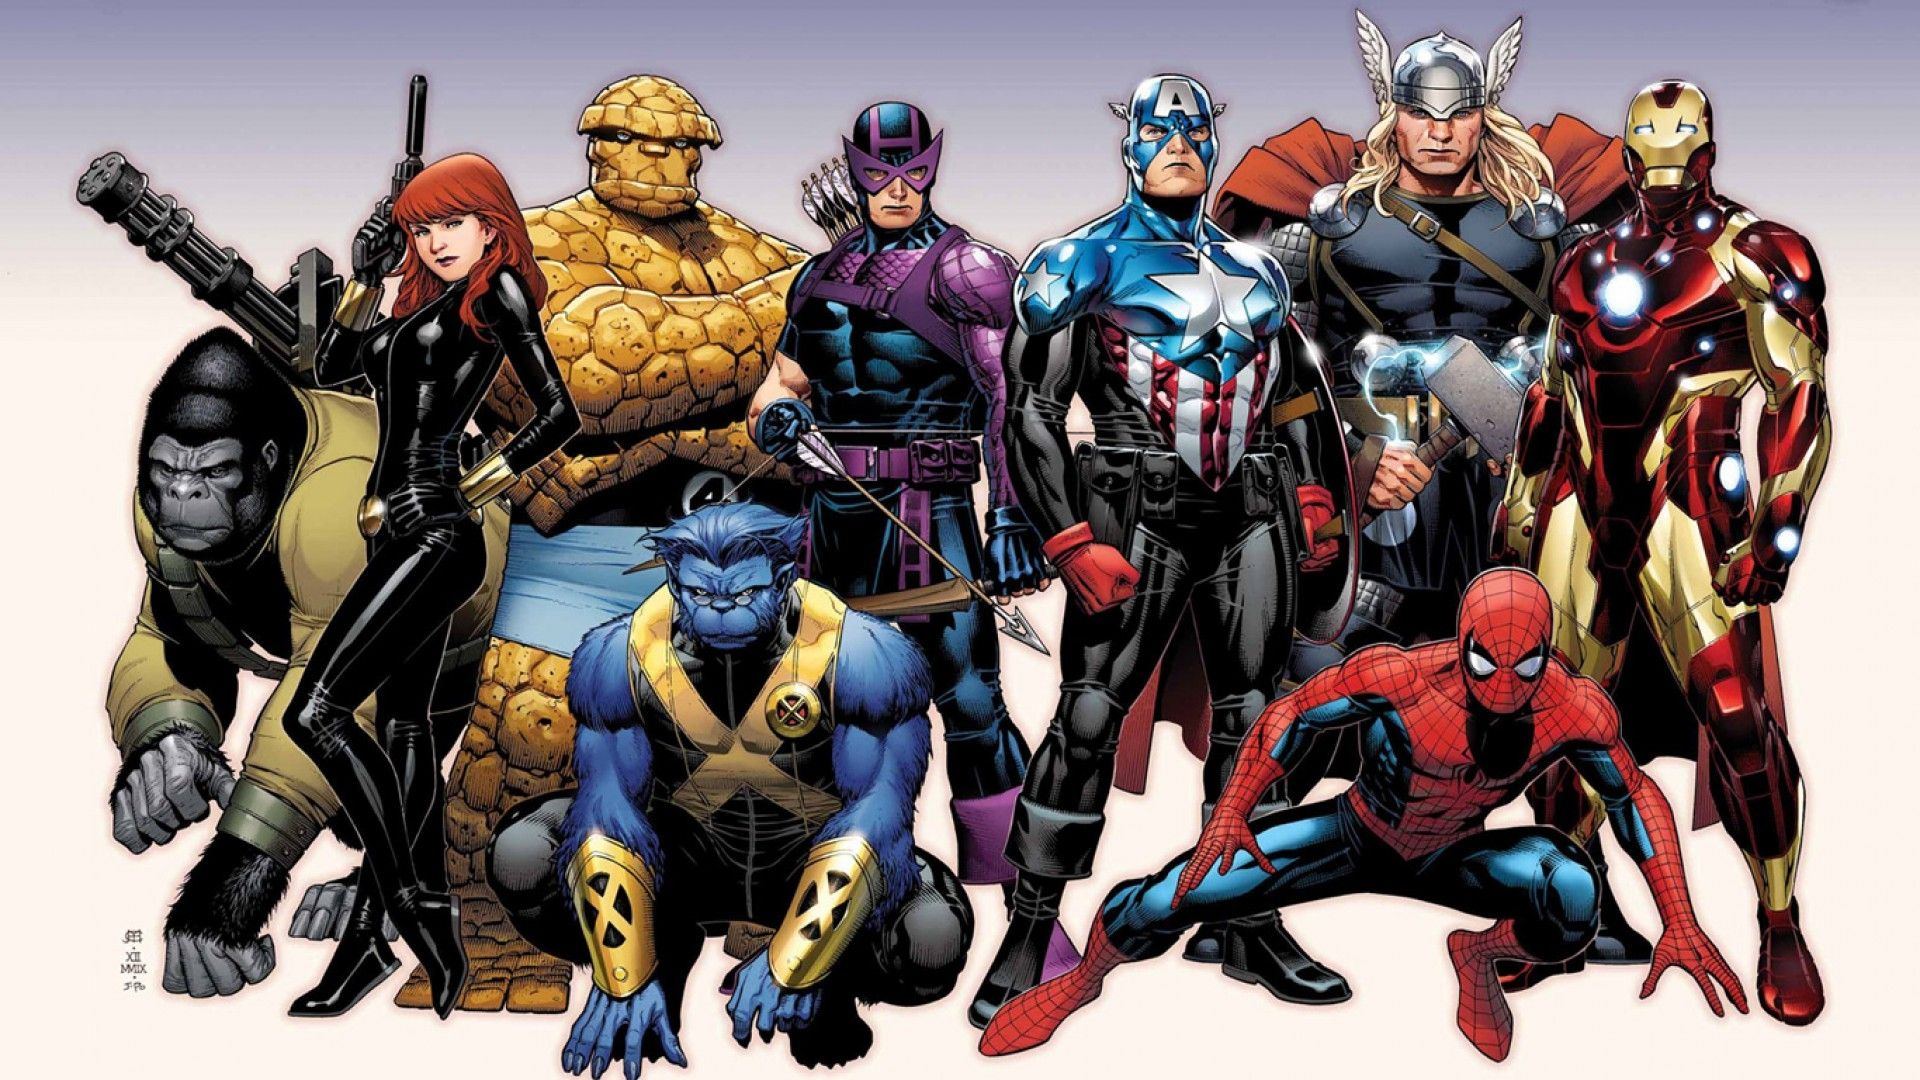 hd wallpaper marvel heroes download hd wallpaper marvel heroes 1920